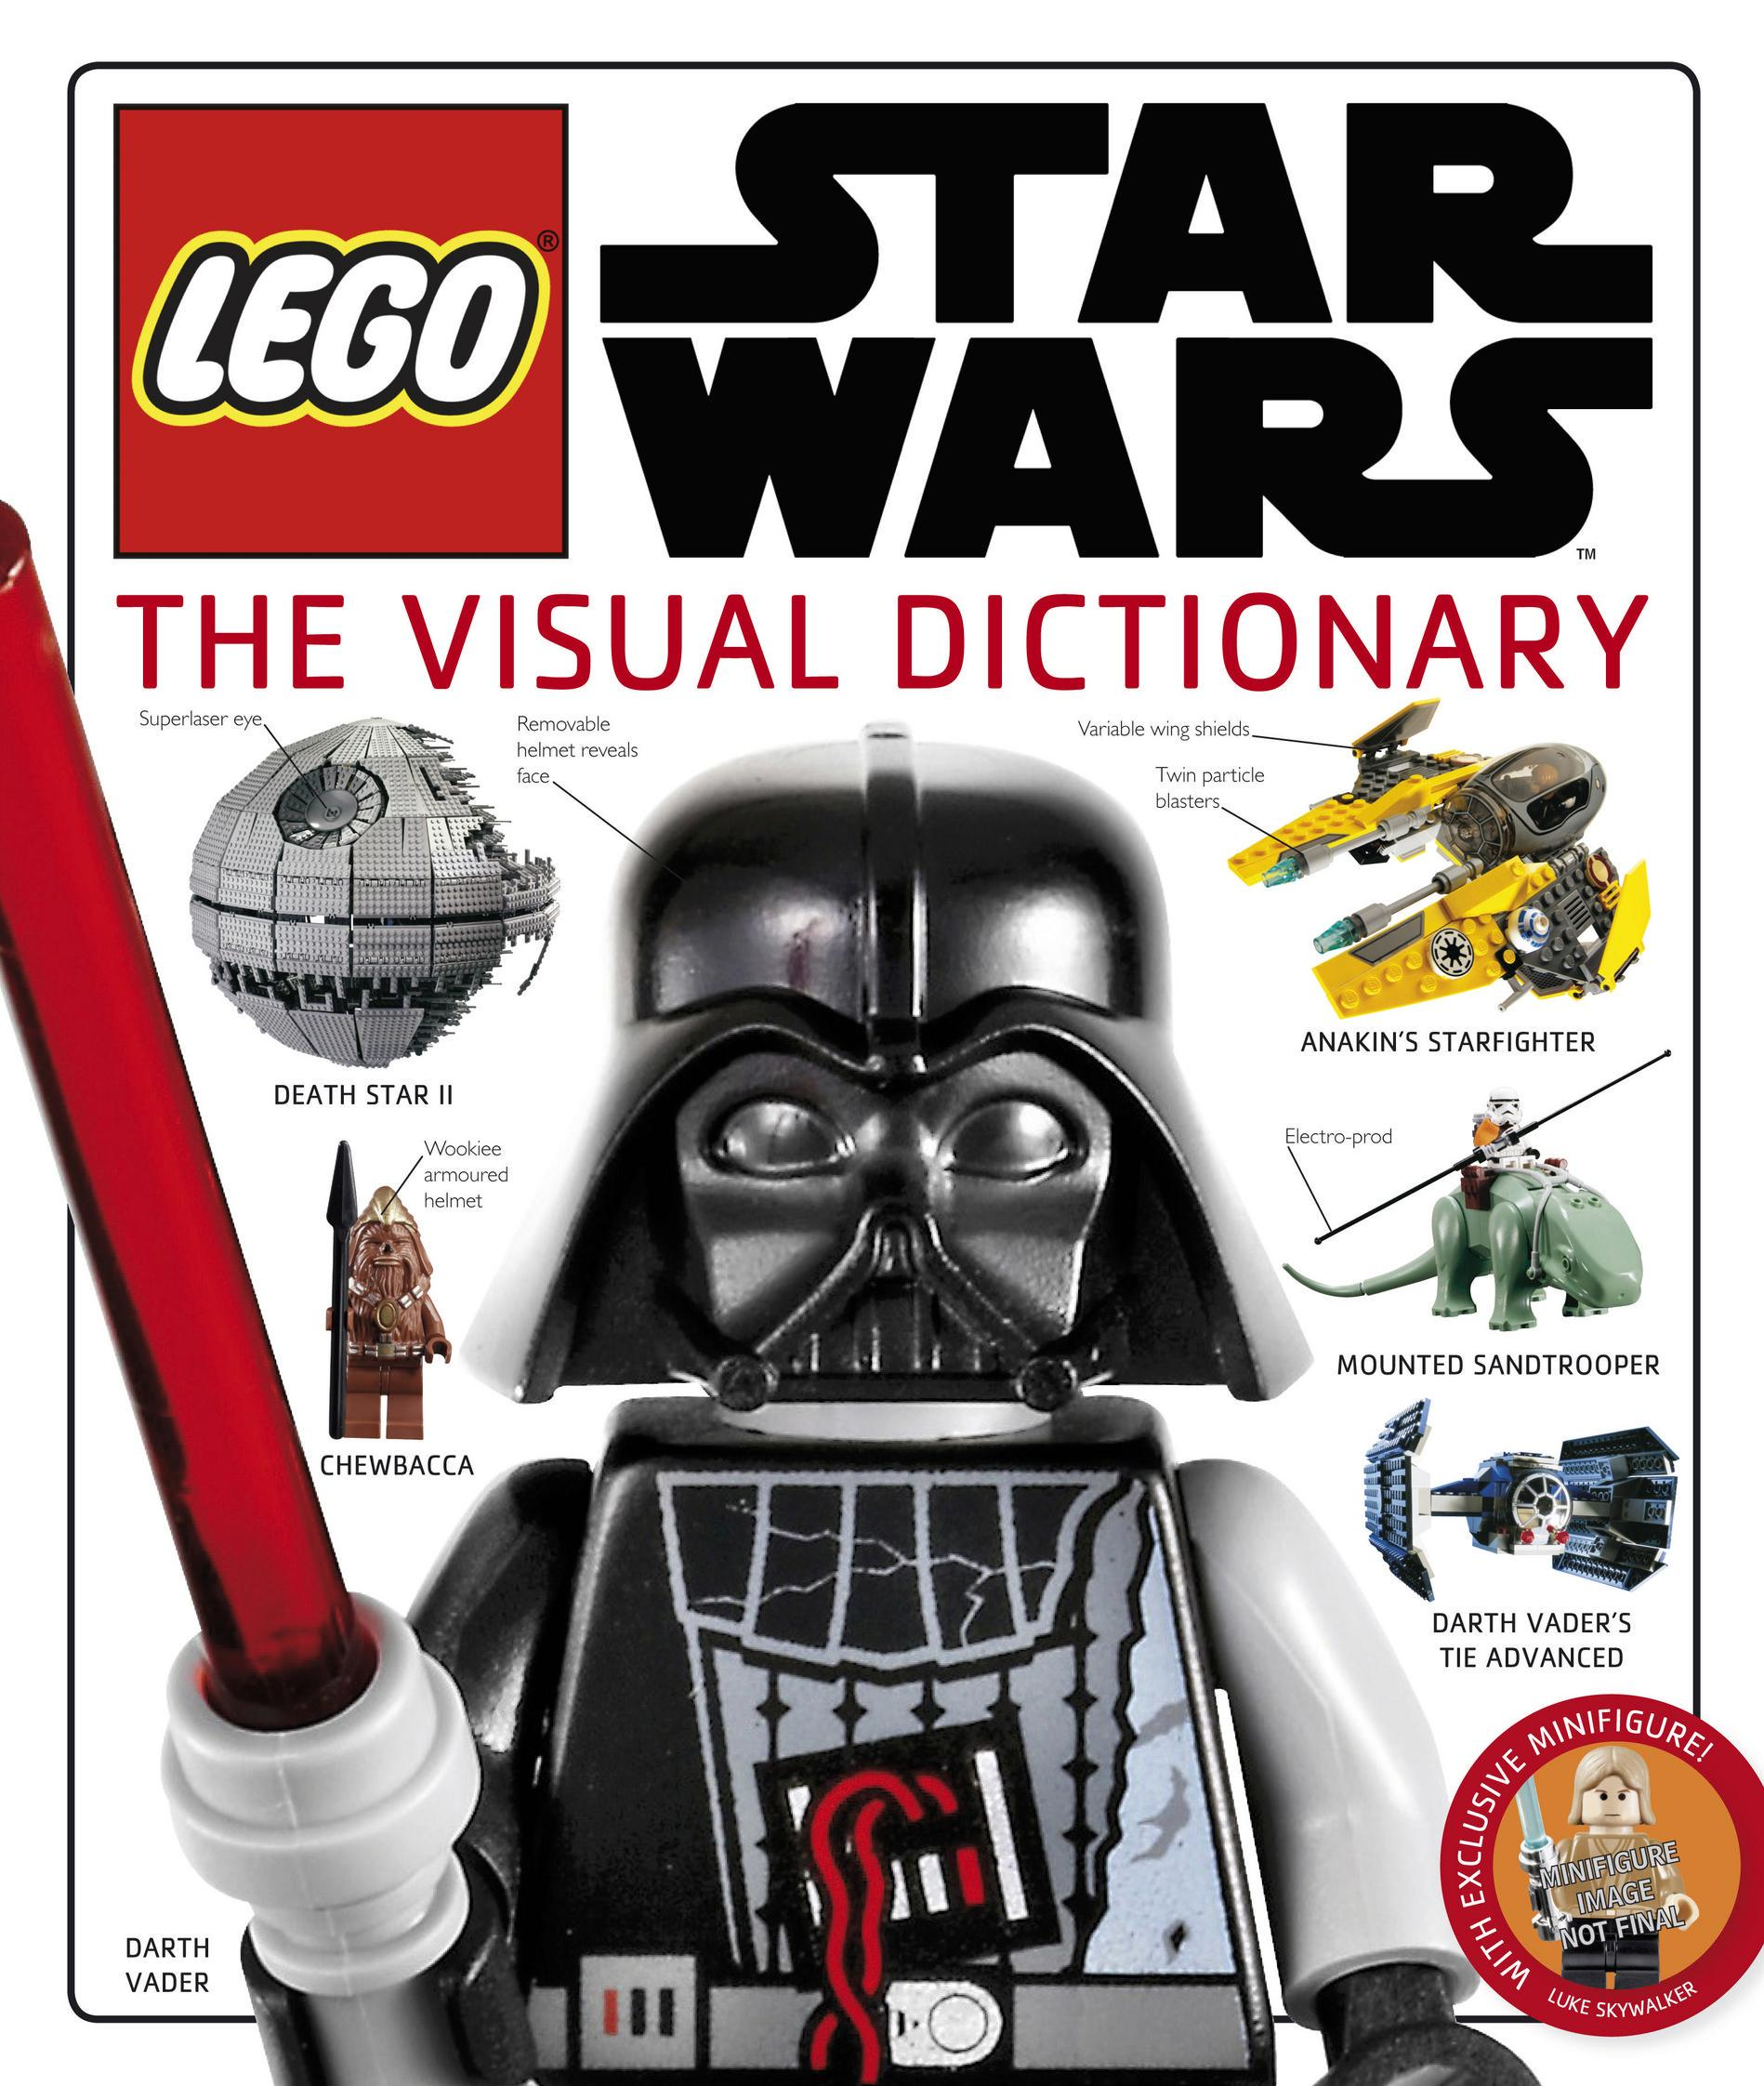 Lego star wars the visual dictionary wookieepedia the star wars wiki - Lego star warse ...